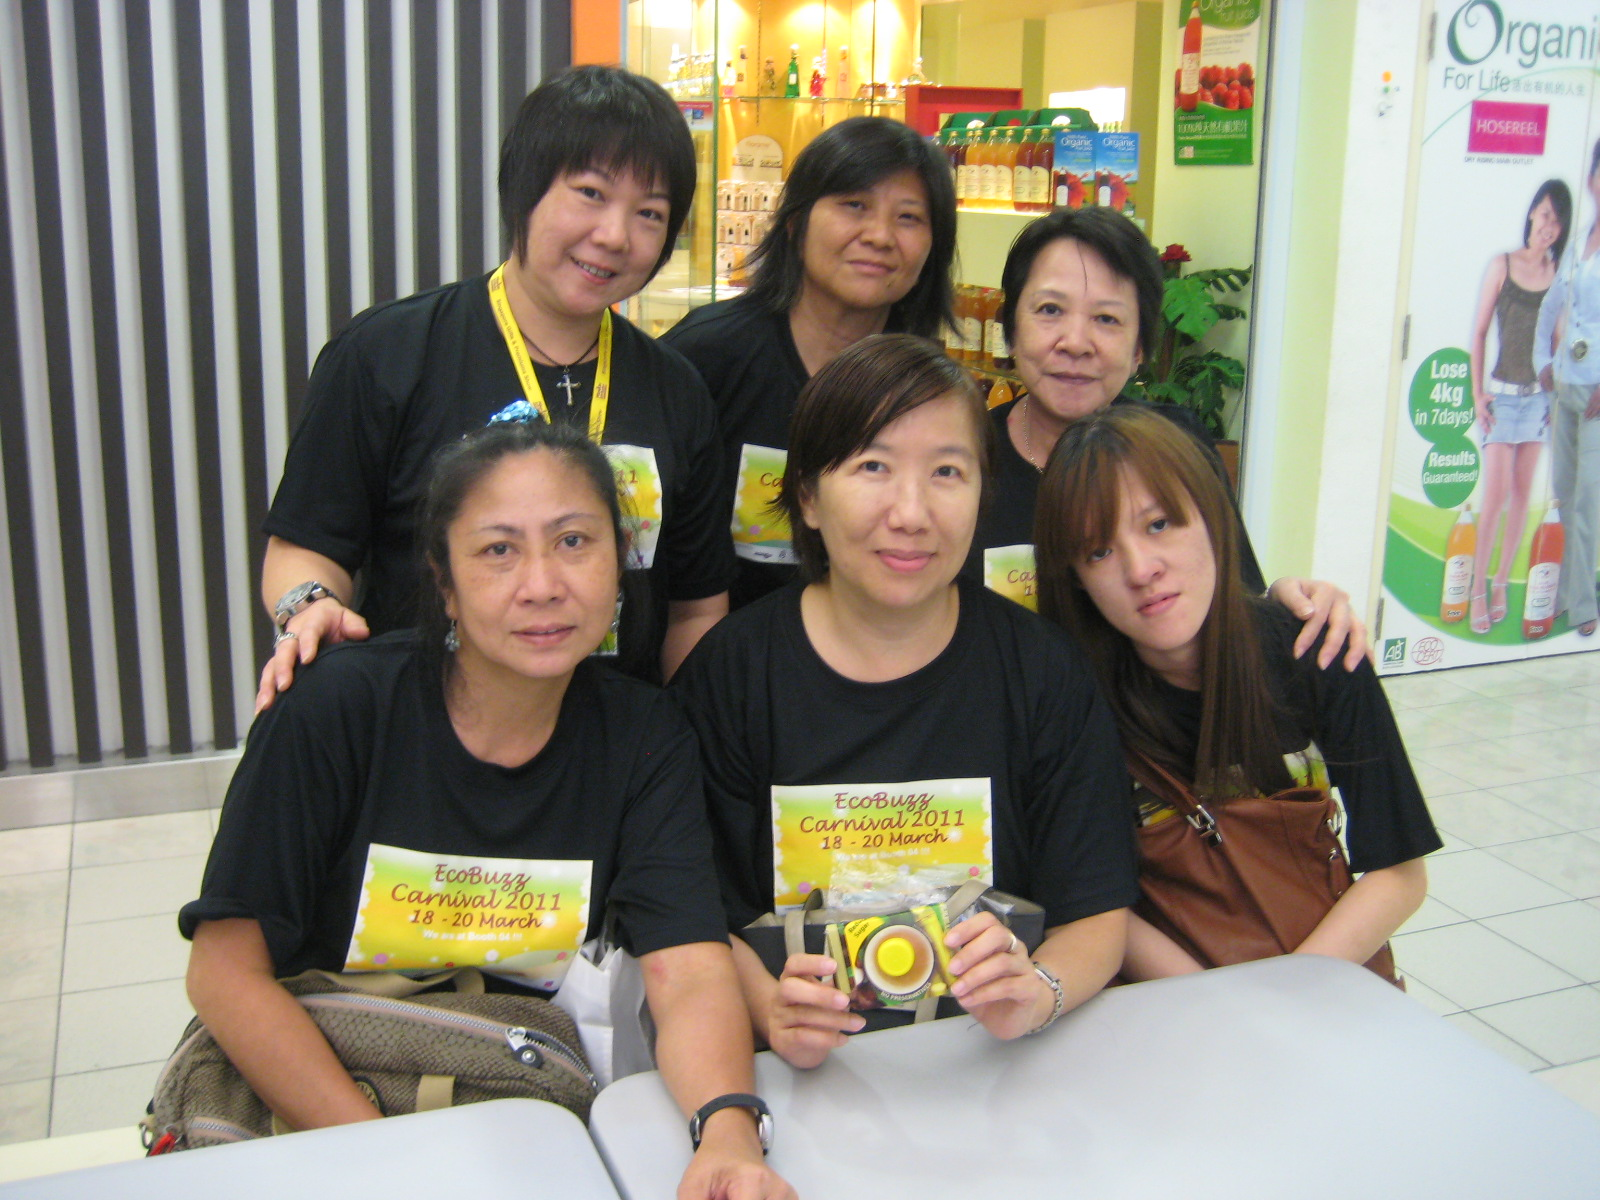 Women from Whispering Hearts at Century Square